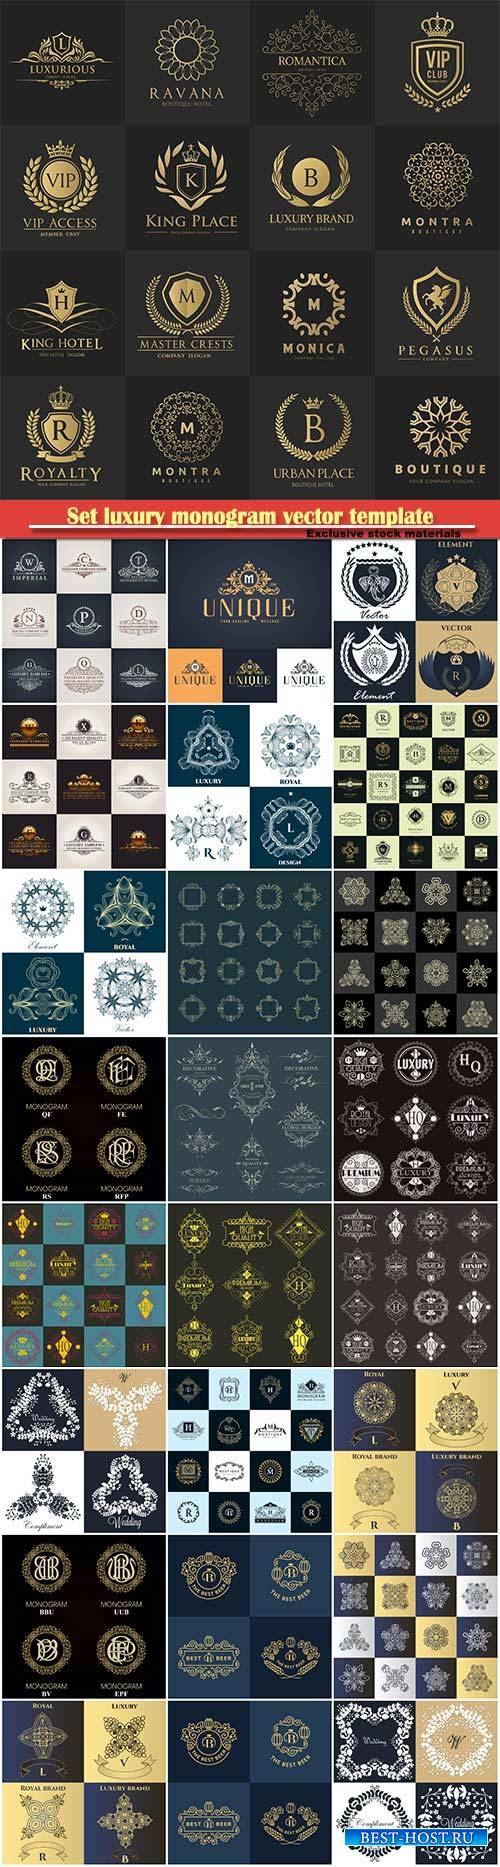 Set luxury monogram vector template, logos, badges, symbols # 5